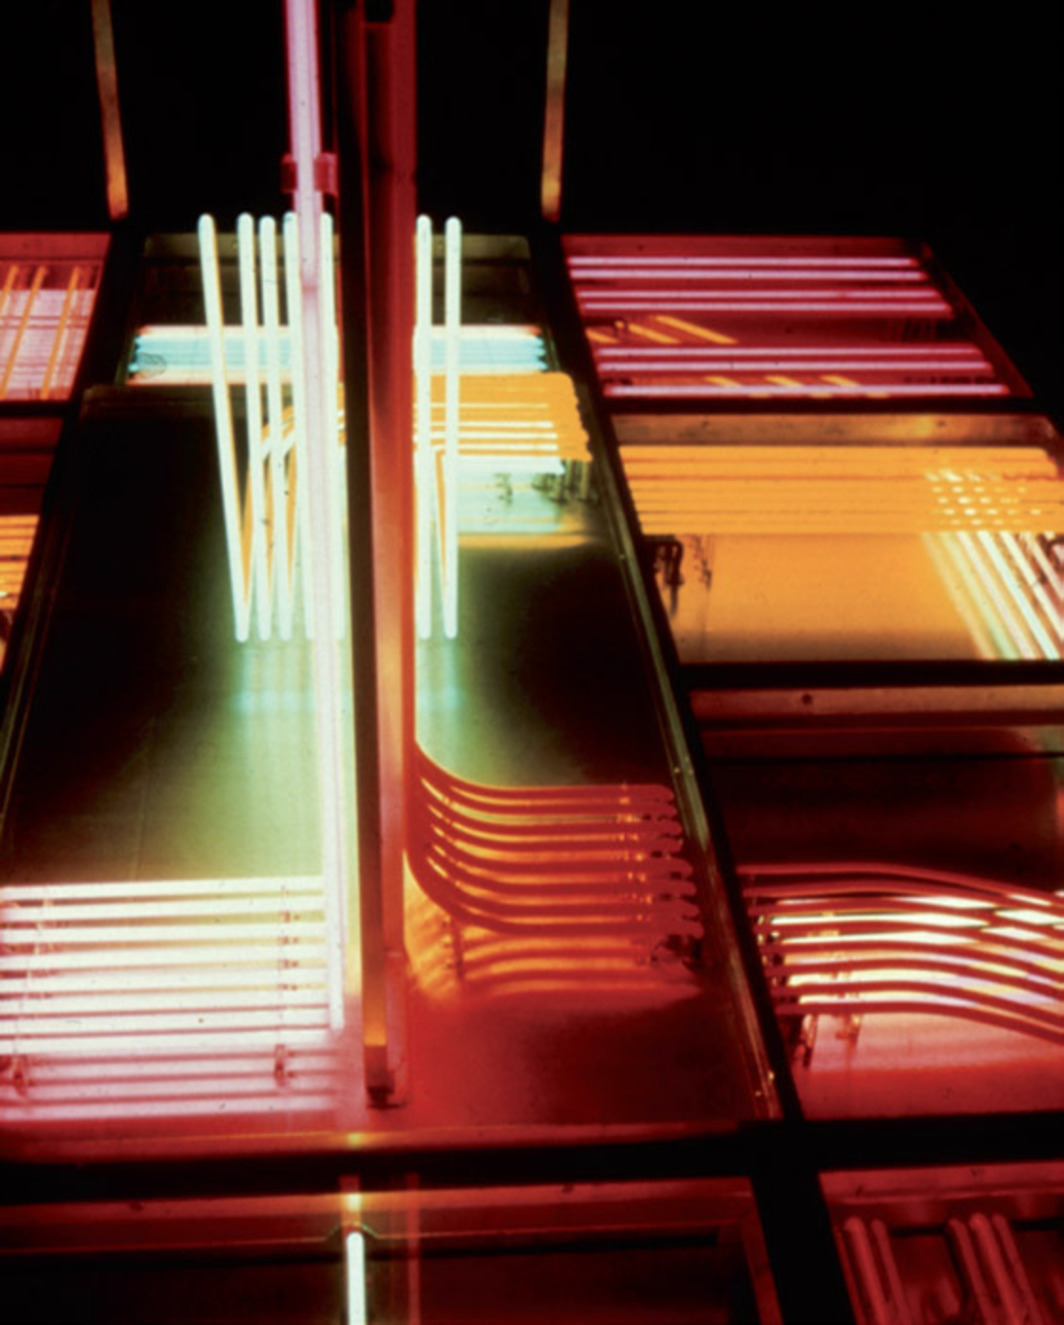 Stephen Antonakos, Walk-On Neon (detail), 1968, glass, metal, neon, 10 x 9 x 12'.